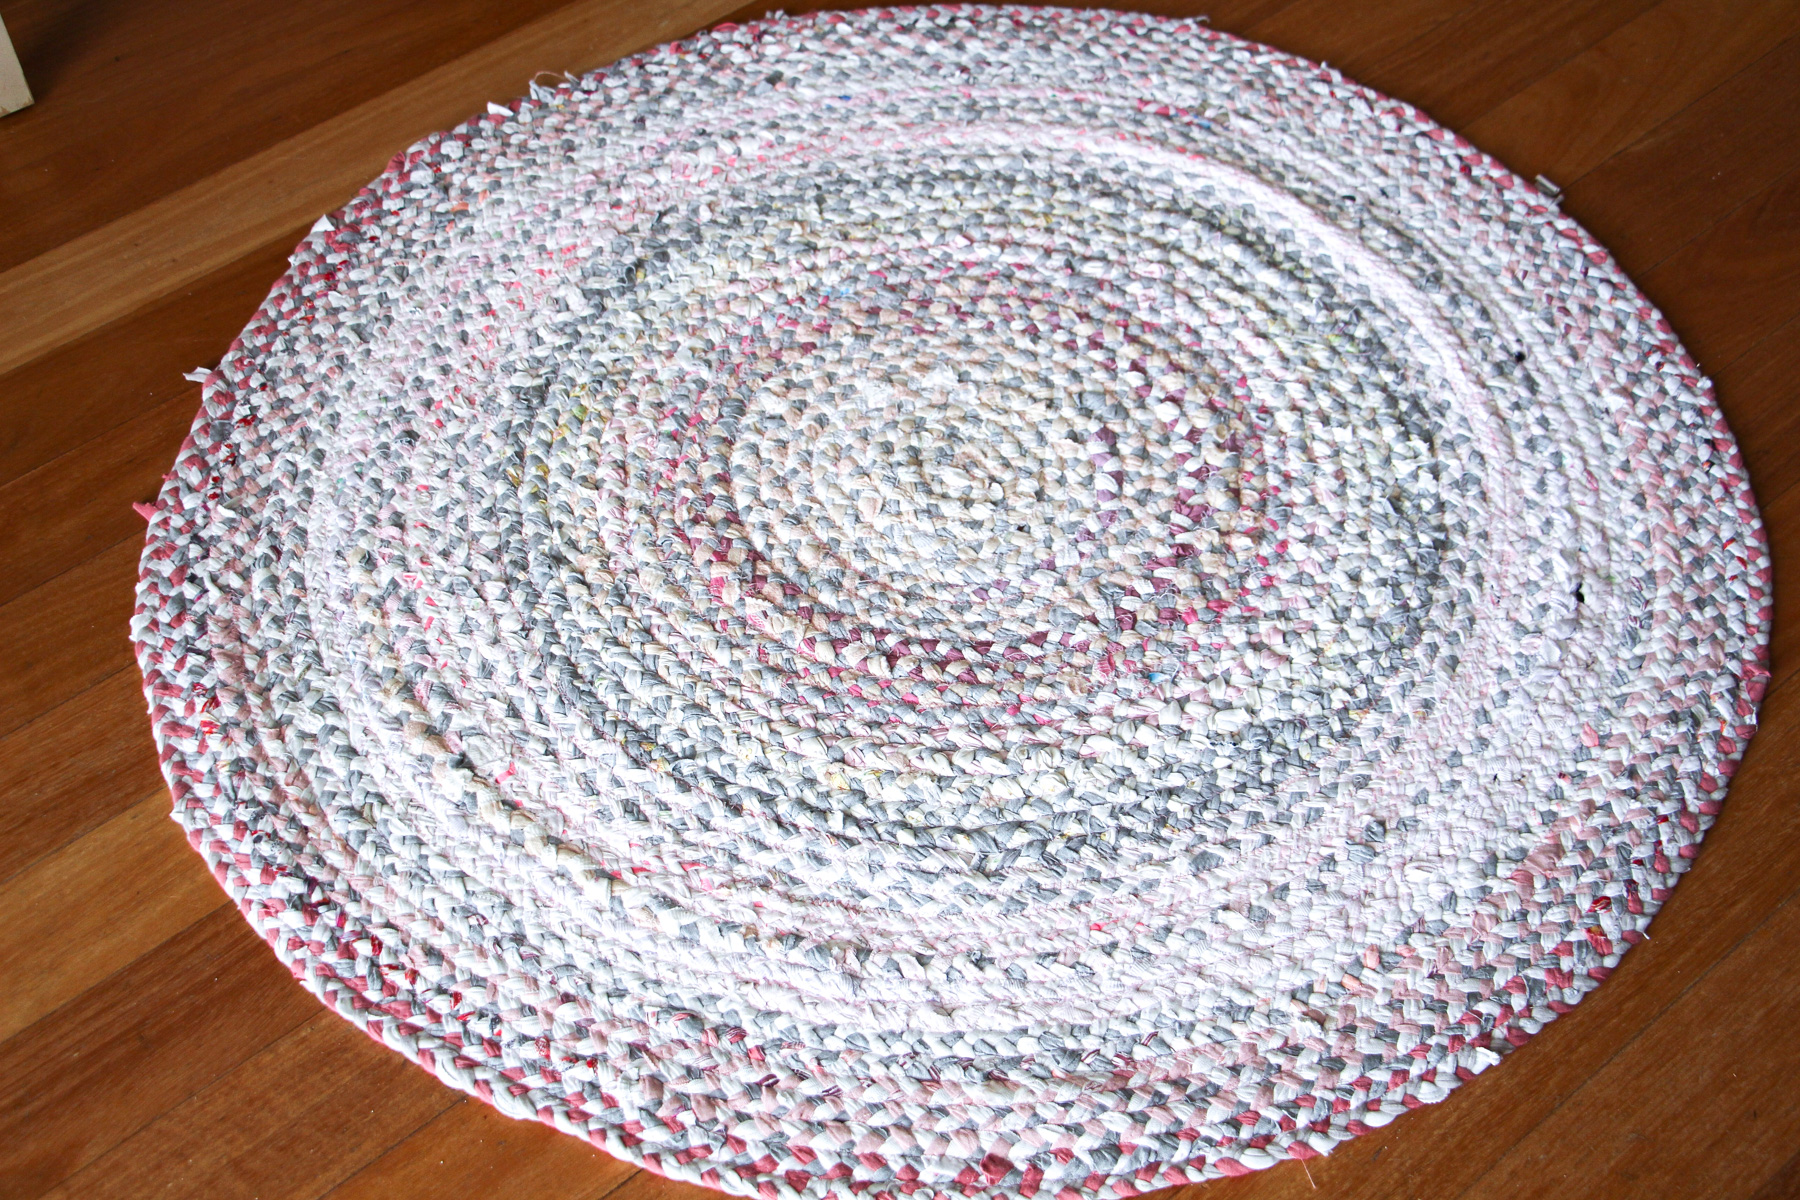 VIDEO // How to make a beautiful braided rug using fabric scraps and/or your old worn out clothing that's too ruined to donate! SO EASY and absolutely gorgeous! // Megan Nielsen Design Diary